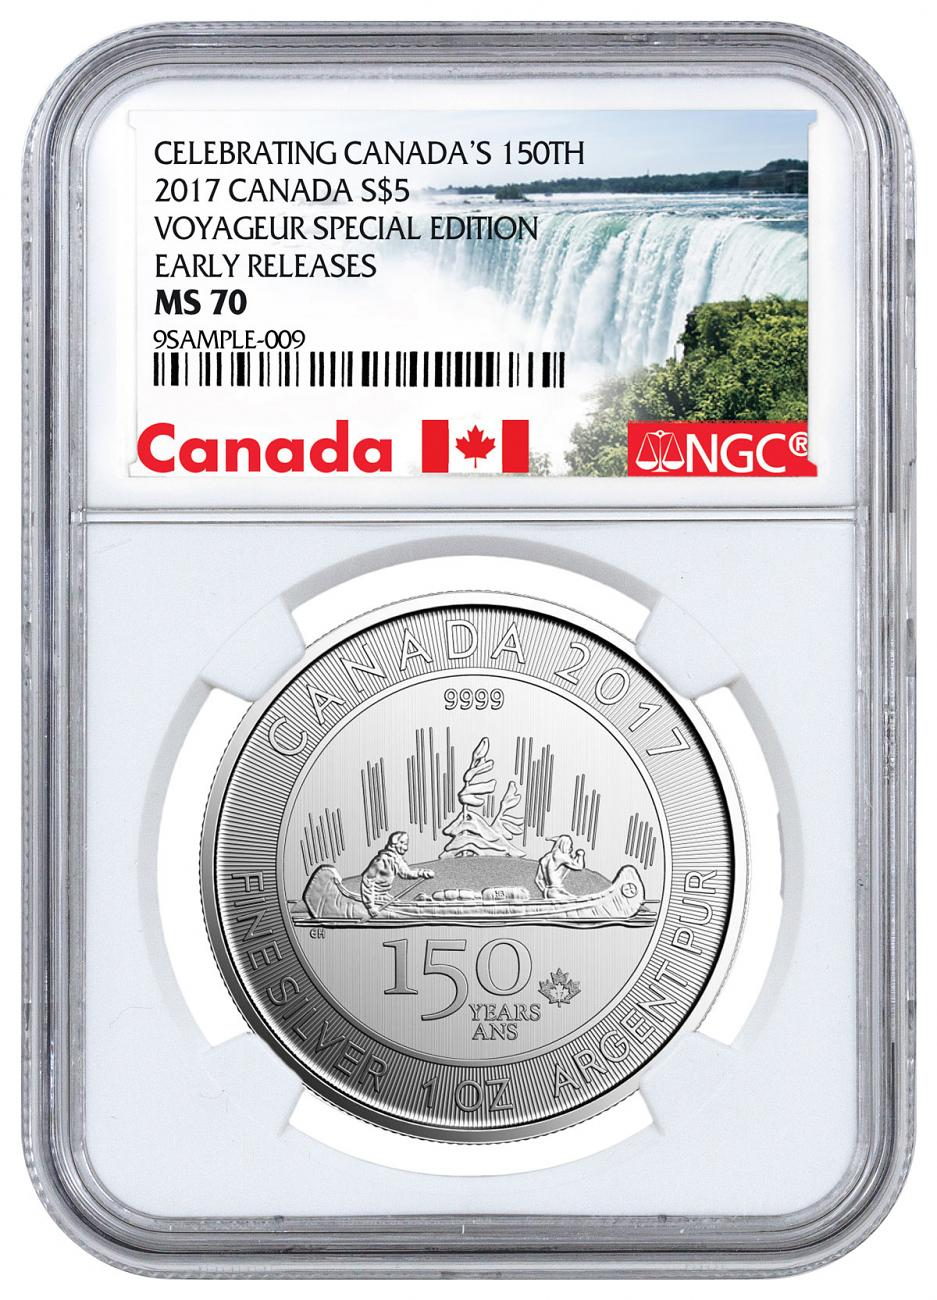 2017 Canada Celebrating Canada's 150th - Voyageur Special Edition 1 oz Silver $5 Coin NGC MS70 ER Exclusive Canada Label